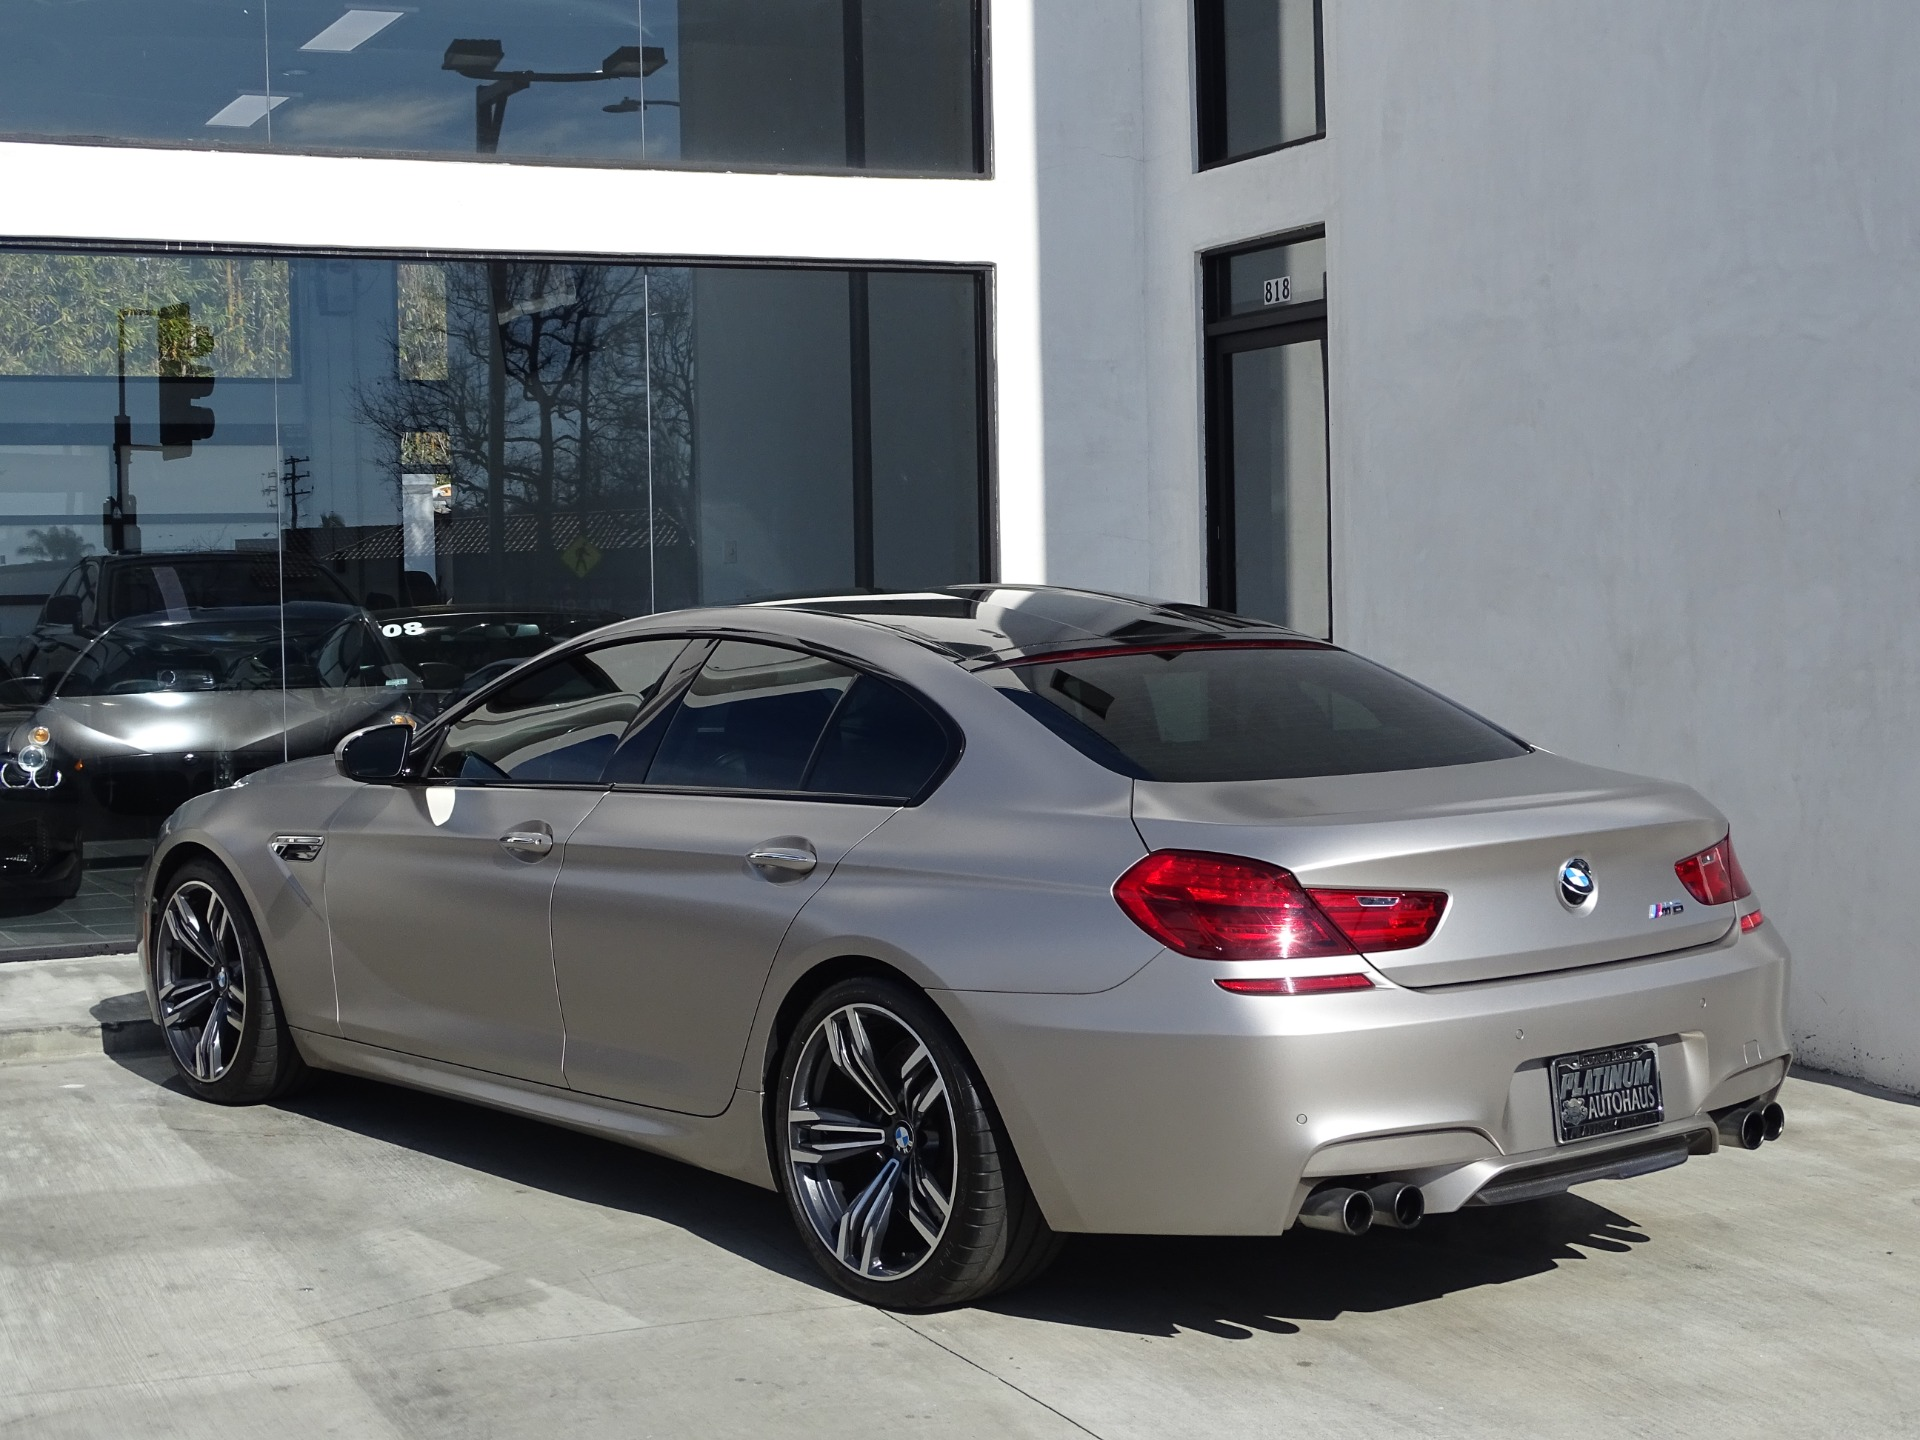 Used-2015-BMW-M6-Gran-Coupe---***-FACTORY-FROZEN-GRAY-***